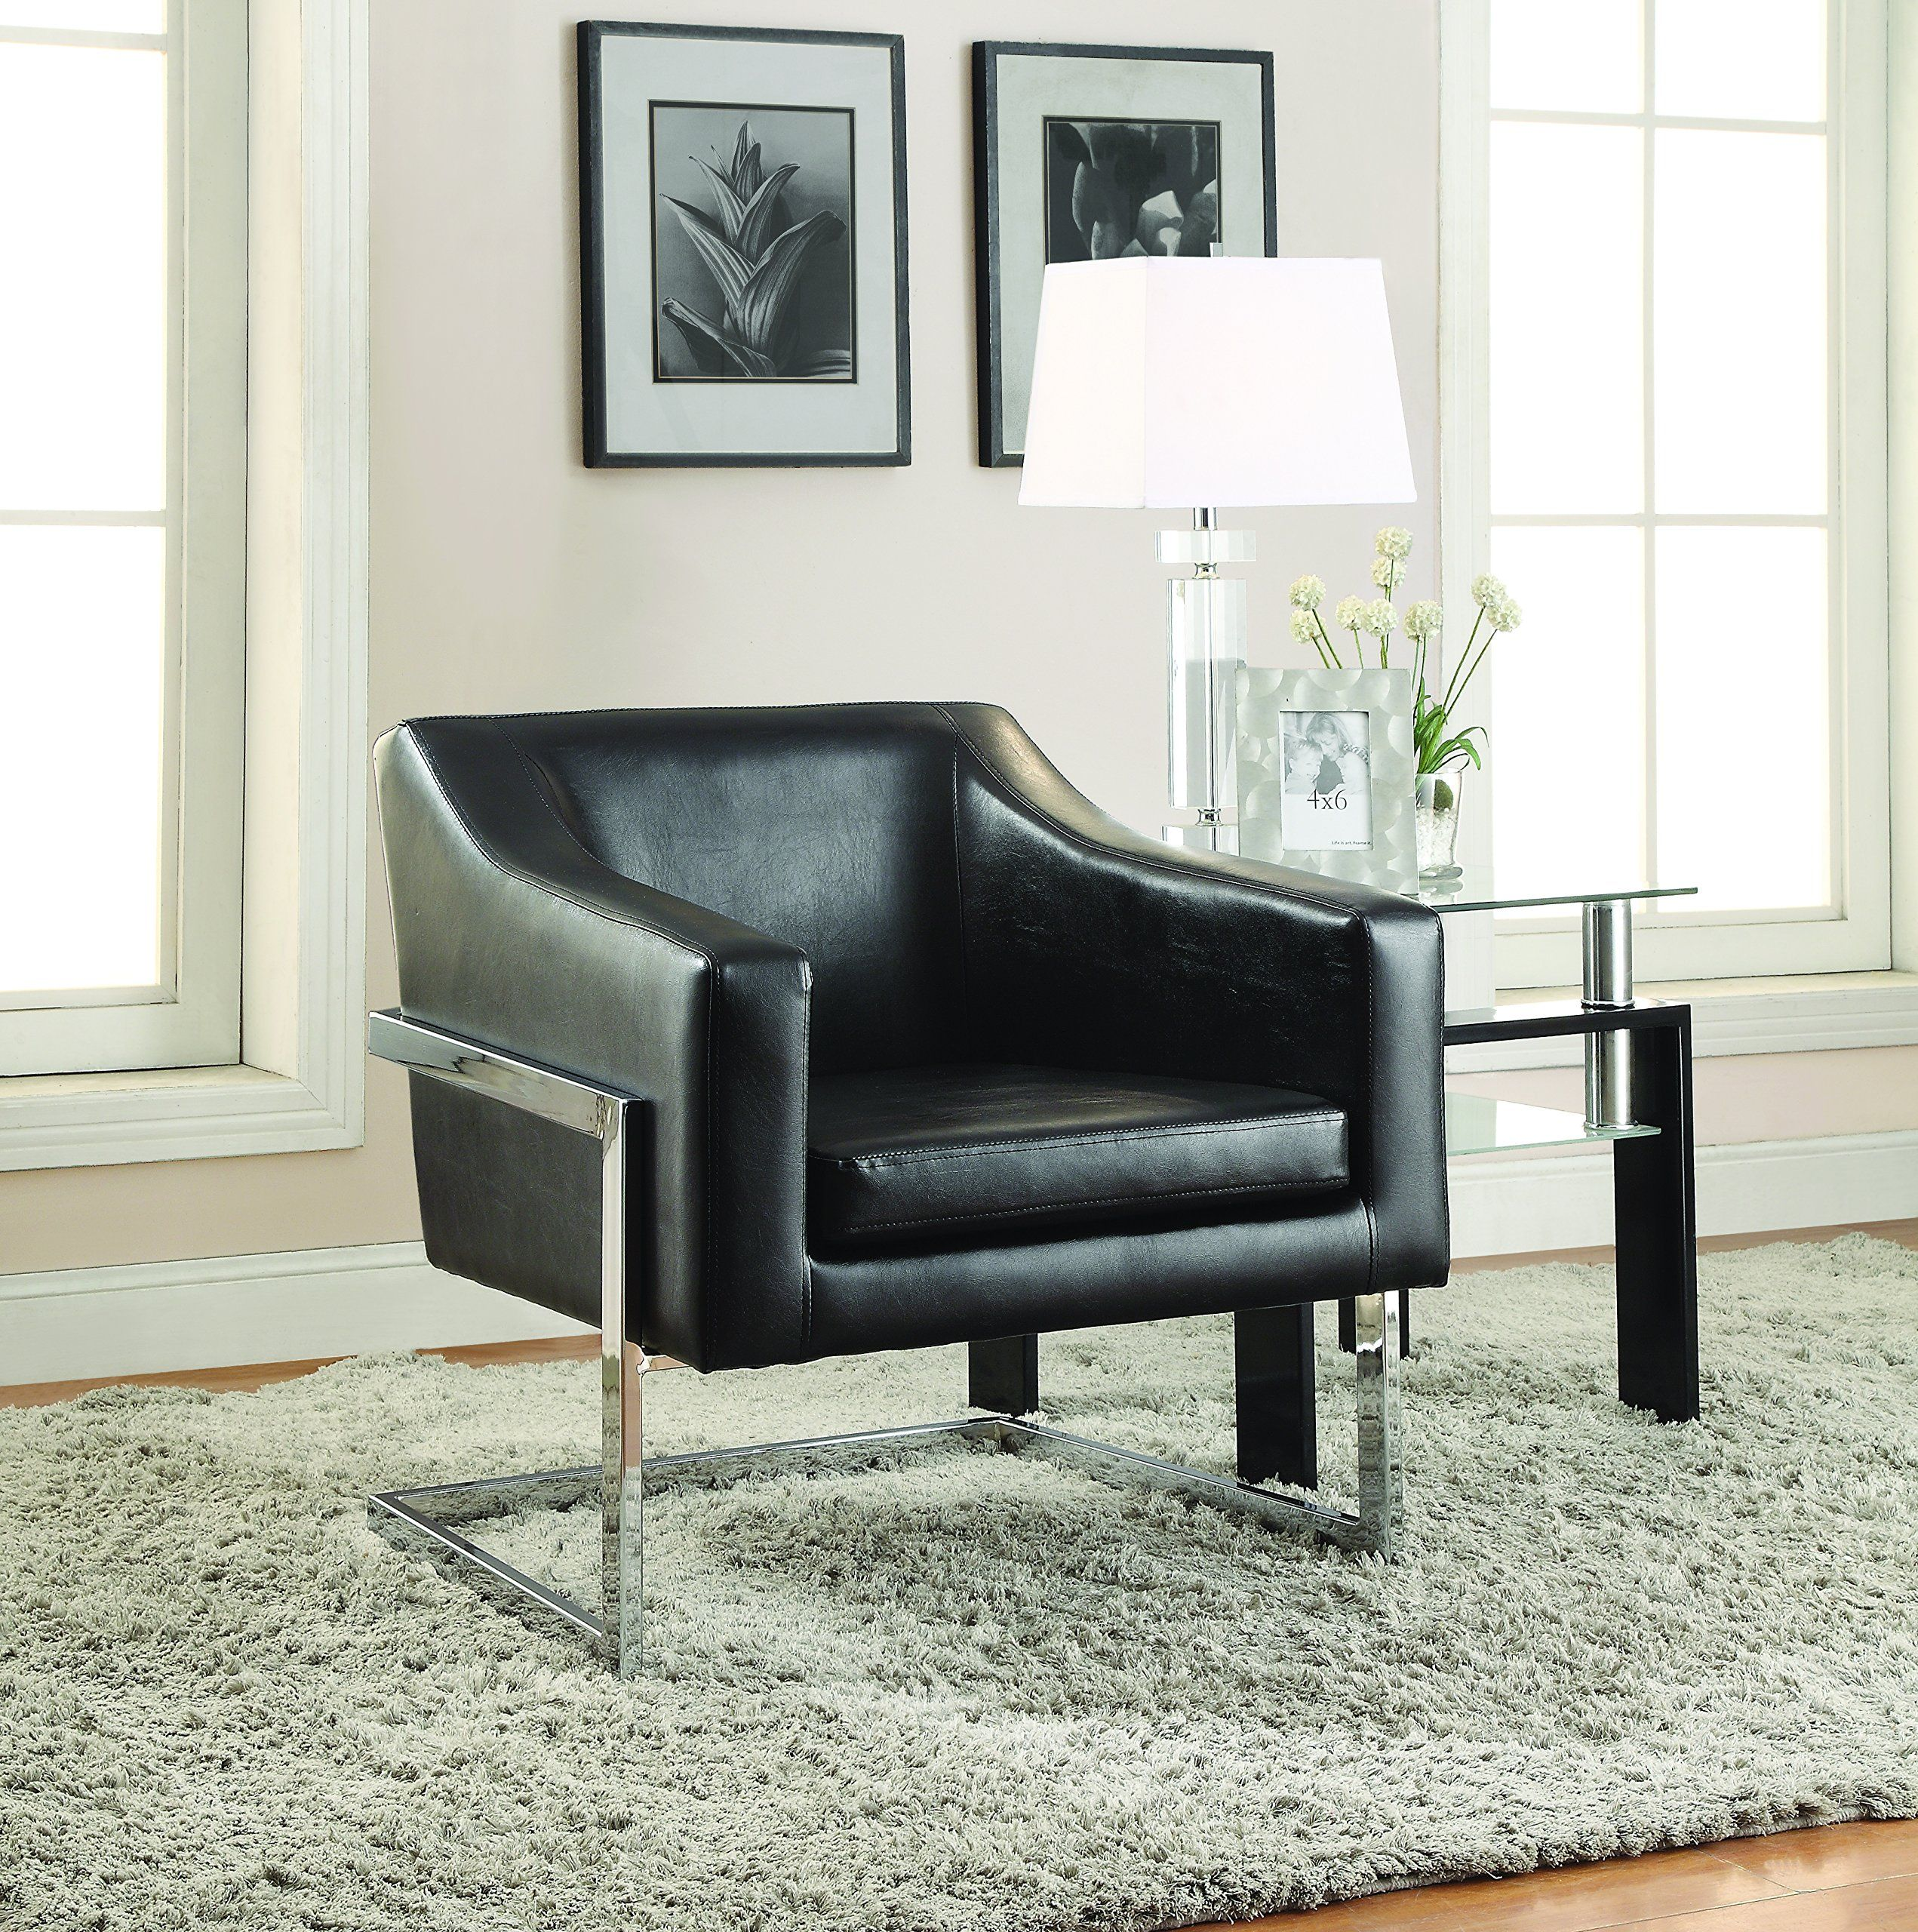 Park Art My WordPress Blog_Black Leather And Wood Accent Chair